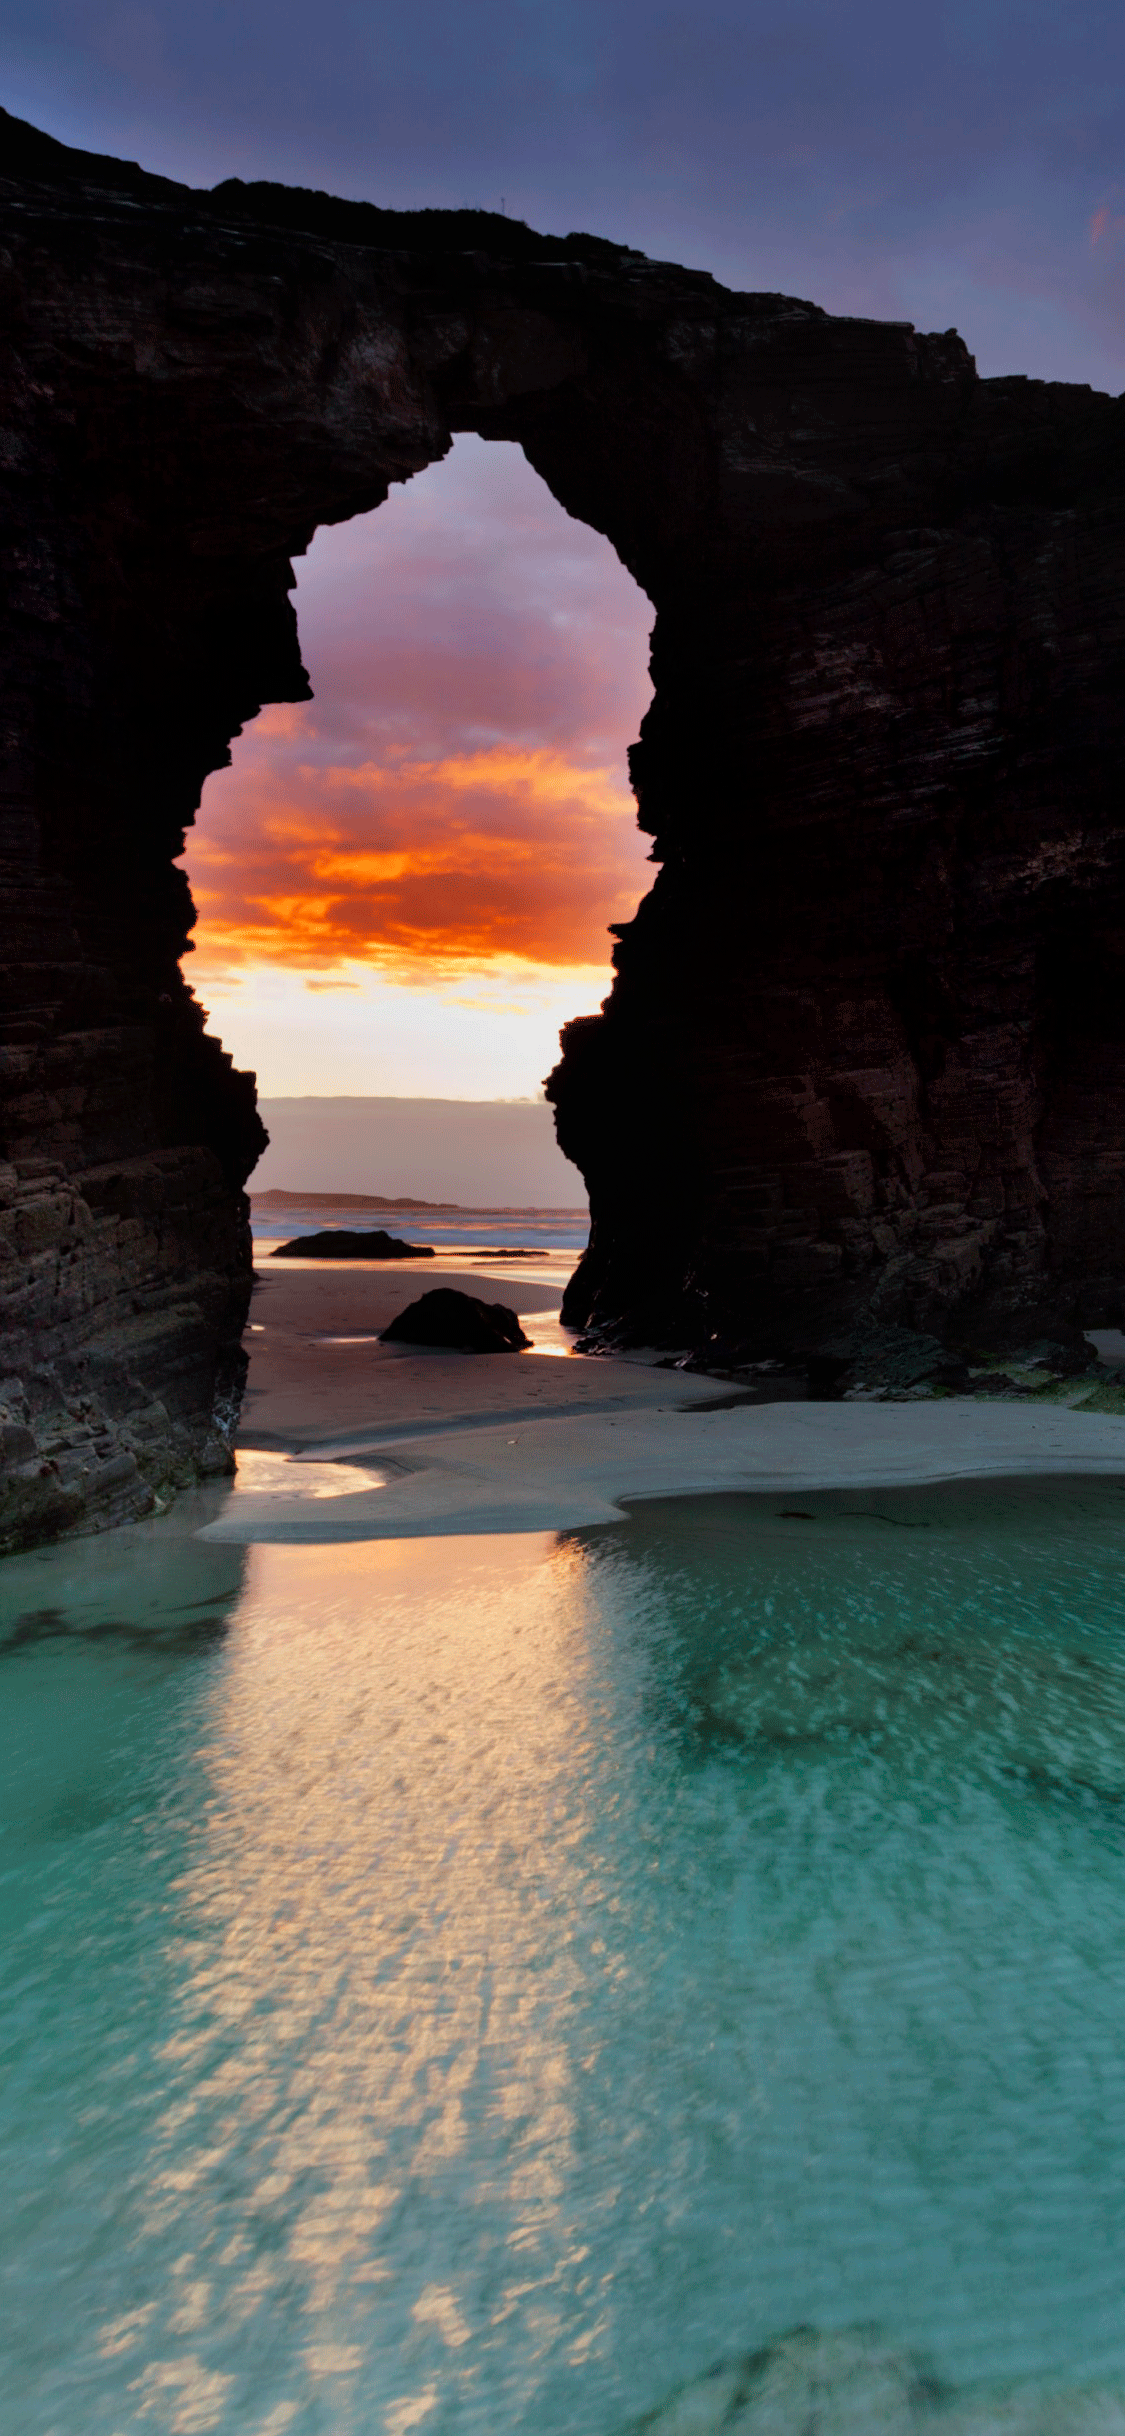 iPhone wallpaper beach las catedrales Beach